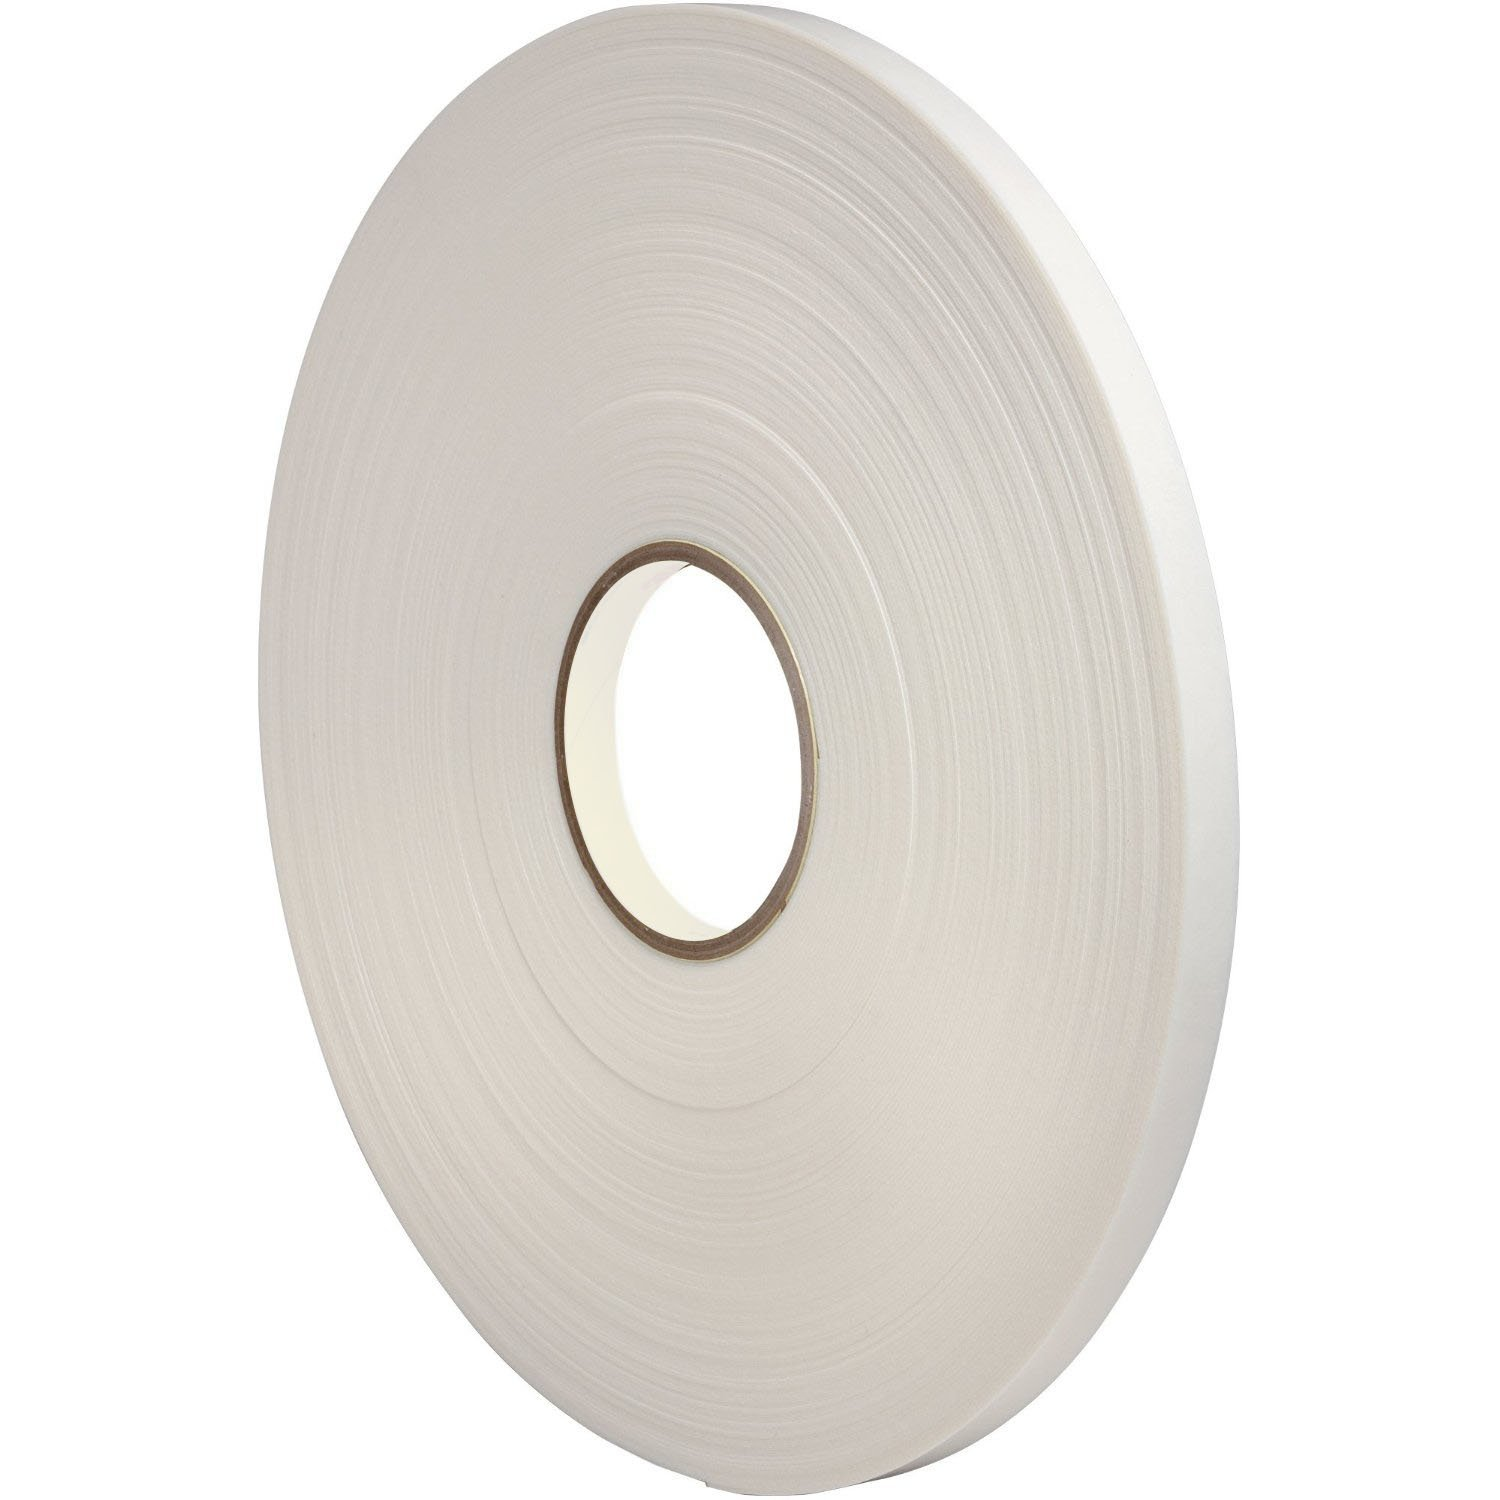 Craft Specialties Double Sided White Foam Tape - 1/2'' X 36 Yards - 1/16'' Thick